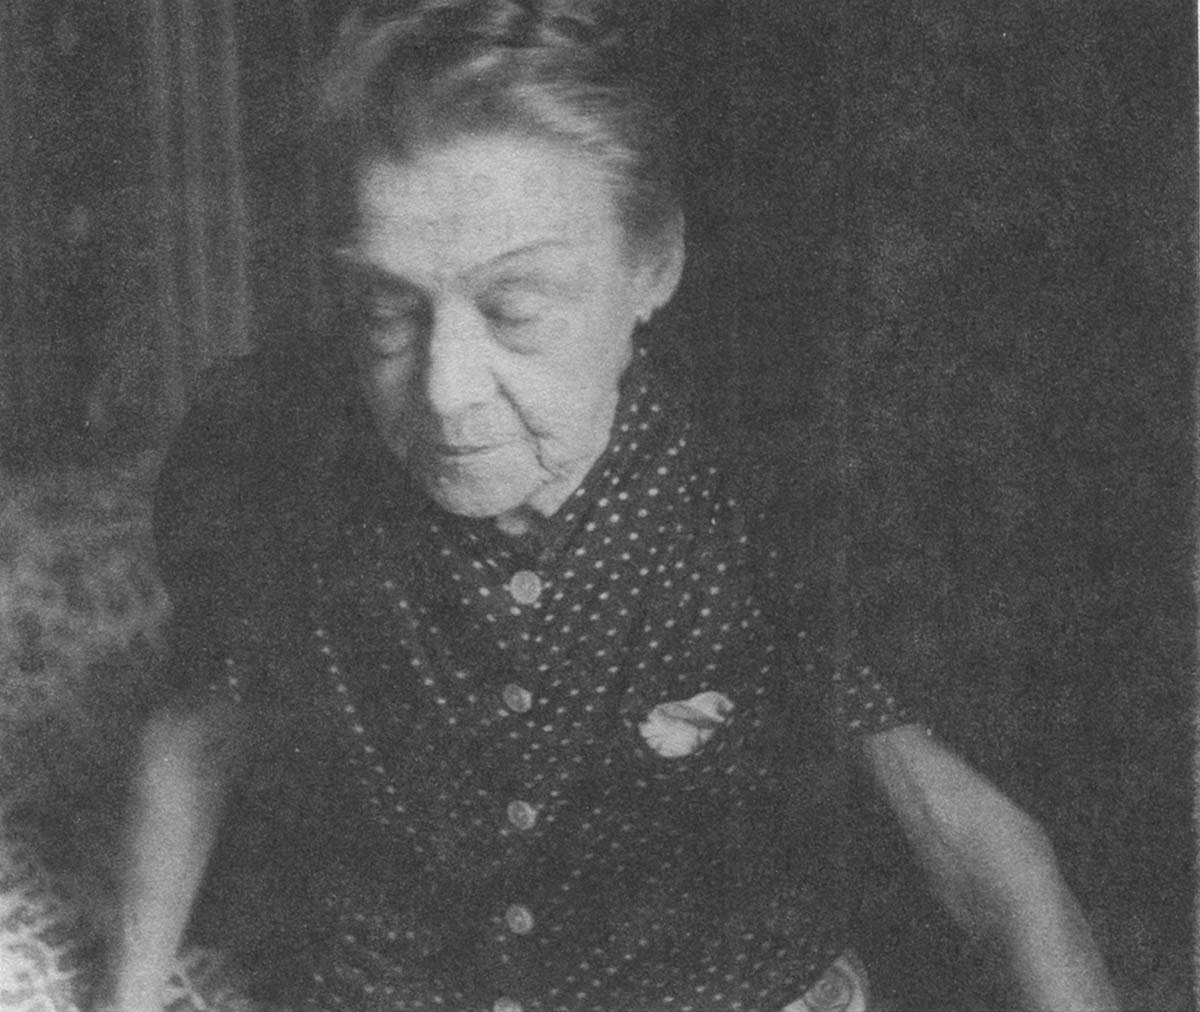 Mrs. Aurora Ionescu in her bedroom.